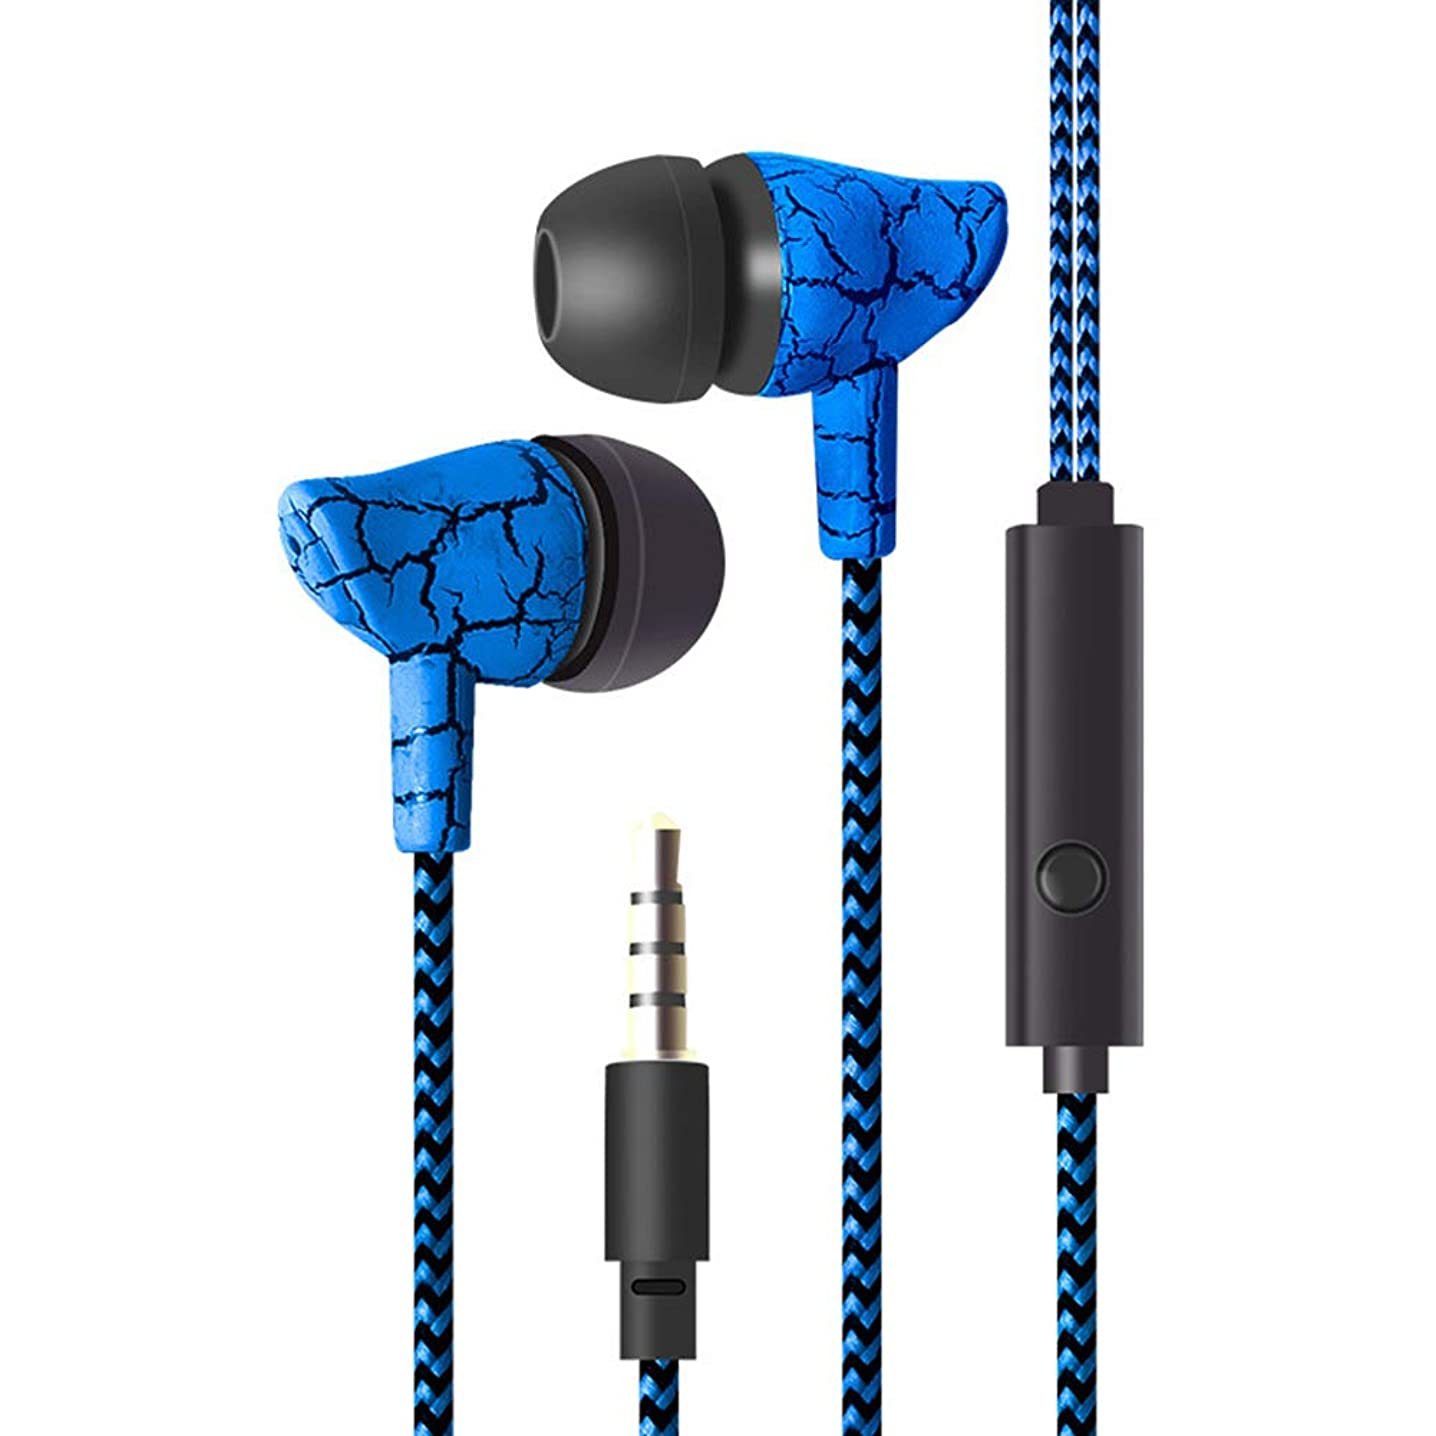 Wulidasheng Wired in-Ear Earphones,Fashion Cracked Print Universal Braided Wire Volume Control in-Ear Earphones Blue rrdspdvselo826